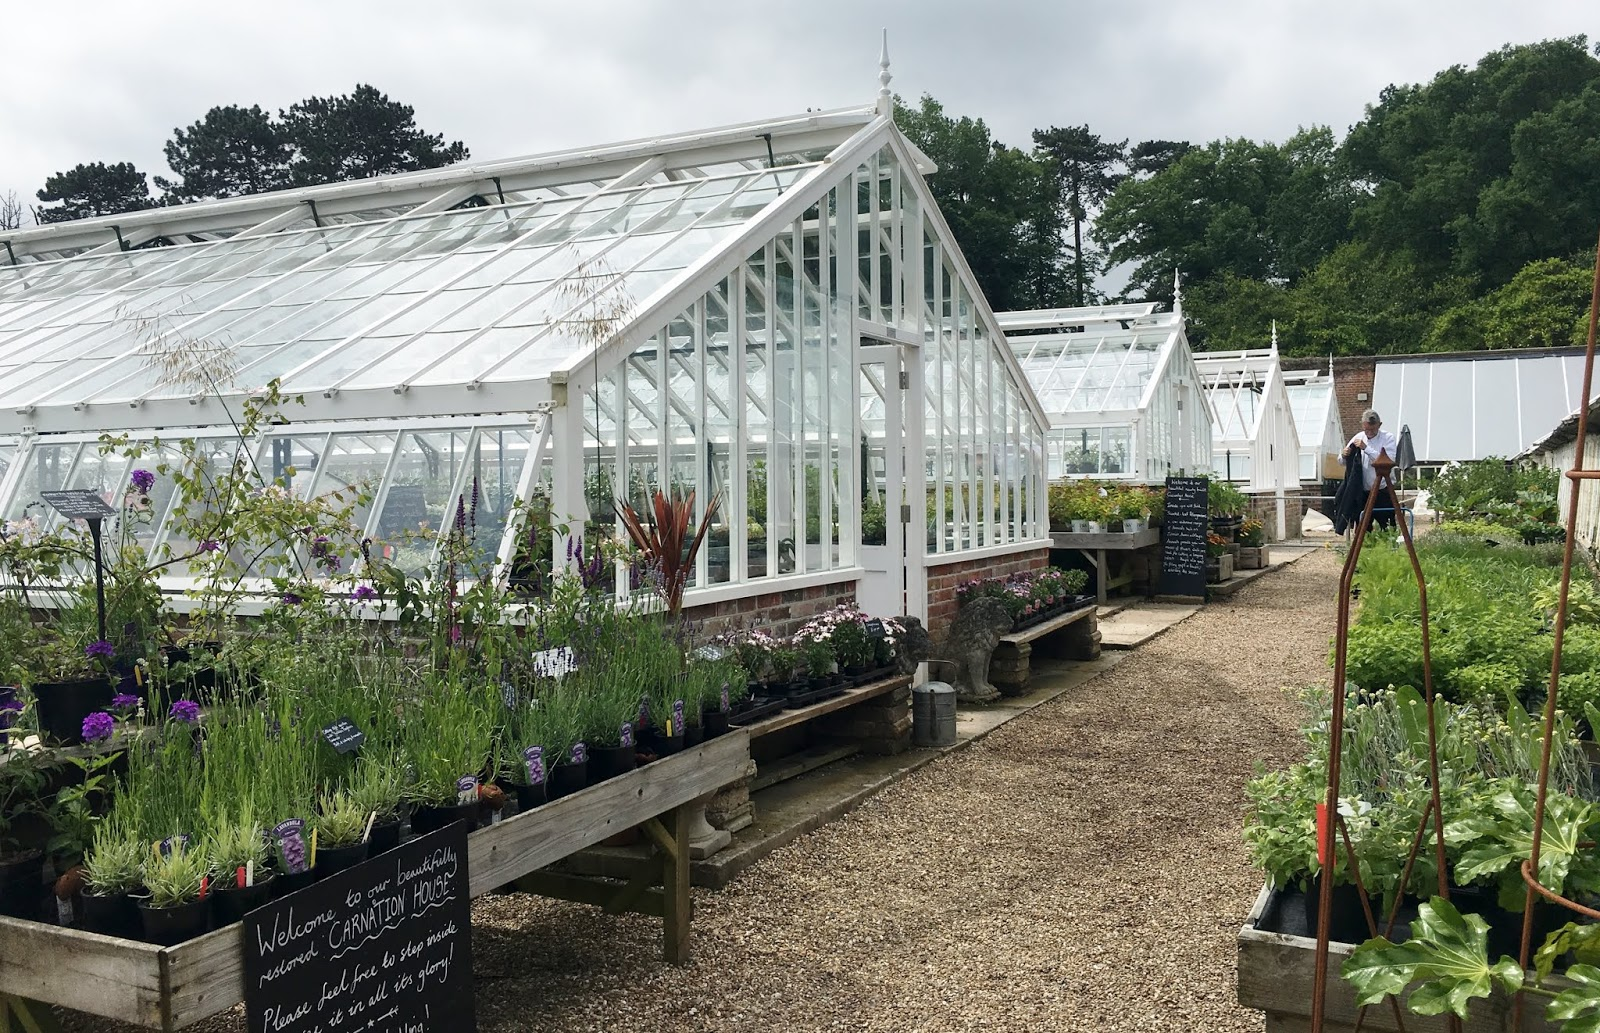 The Walled Nursery near Hawkhurst – rather a special place